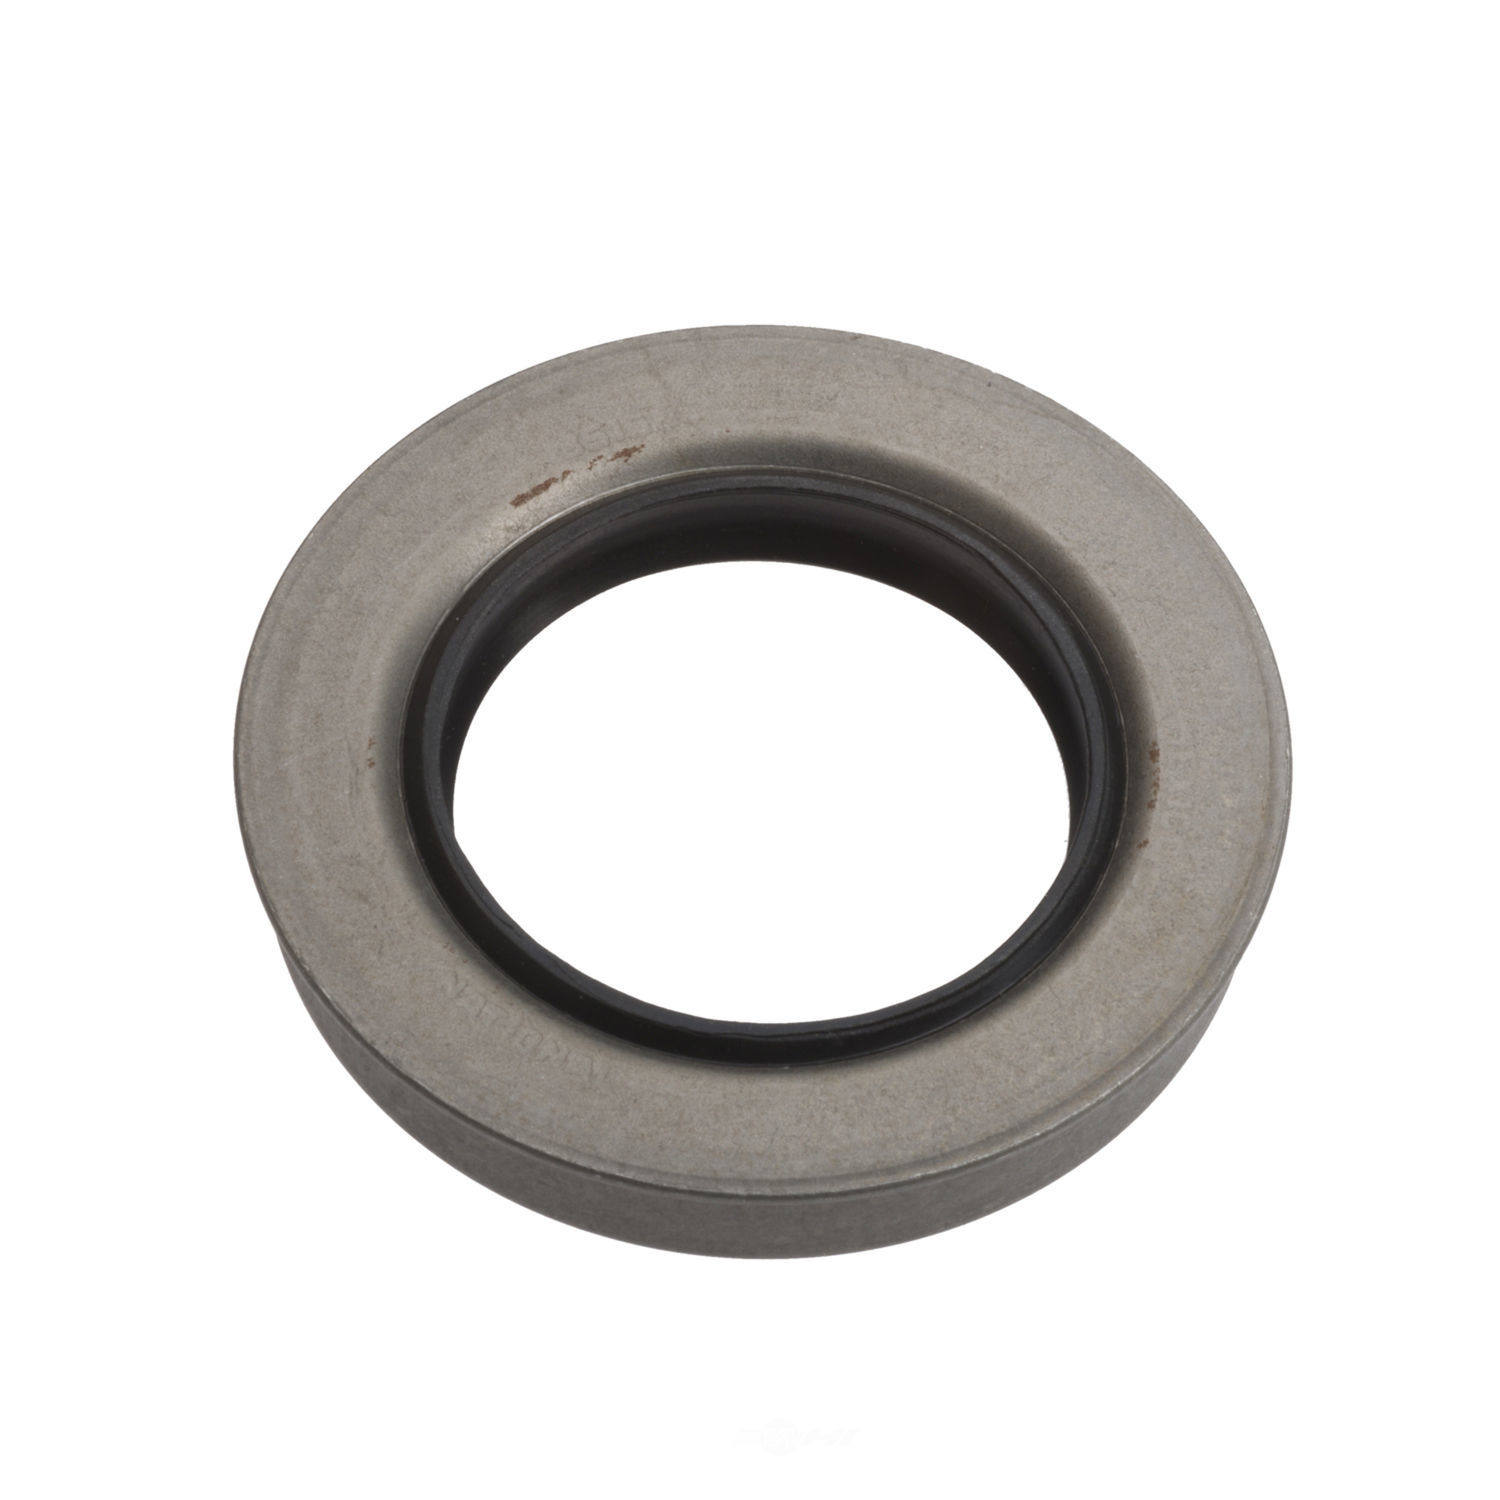 AUTO EXTRA/BEARING-SEALS-HUB ASSEMBLIES - Differential Pinion Seal (Front Outer) - AXJ 8516N